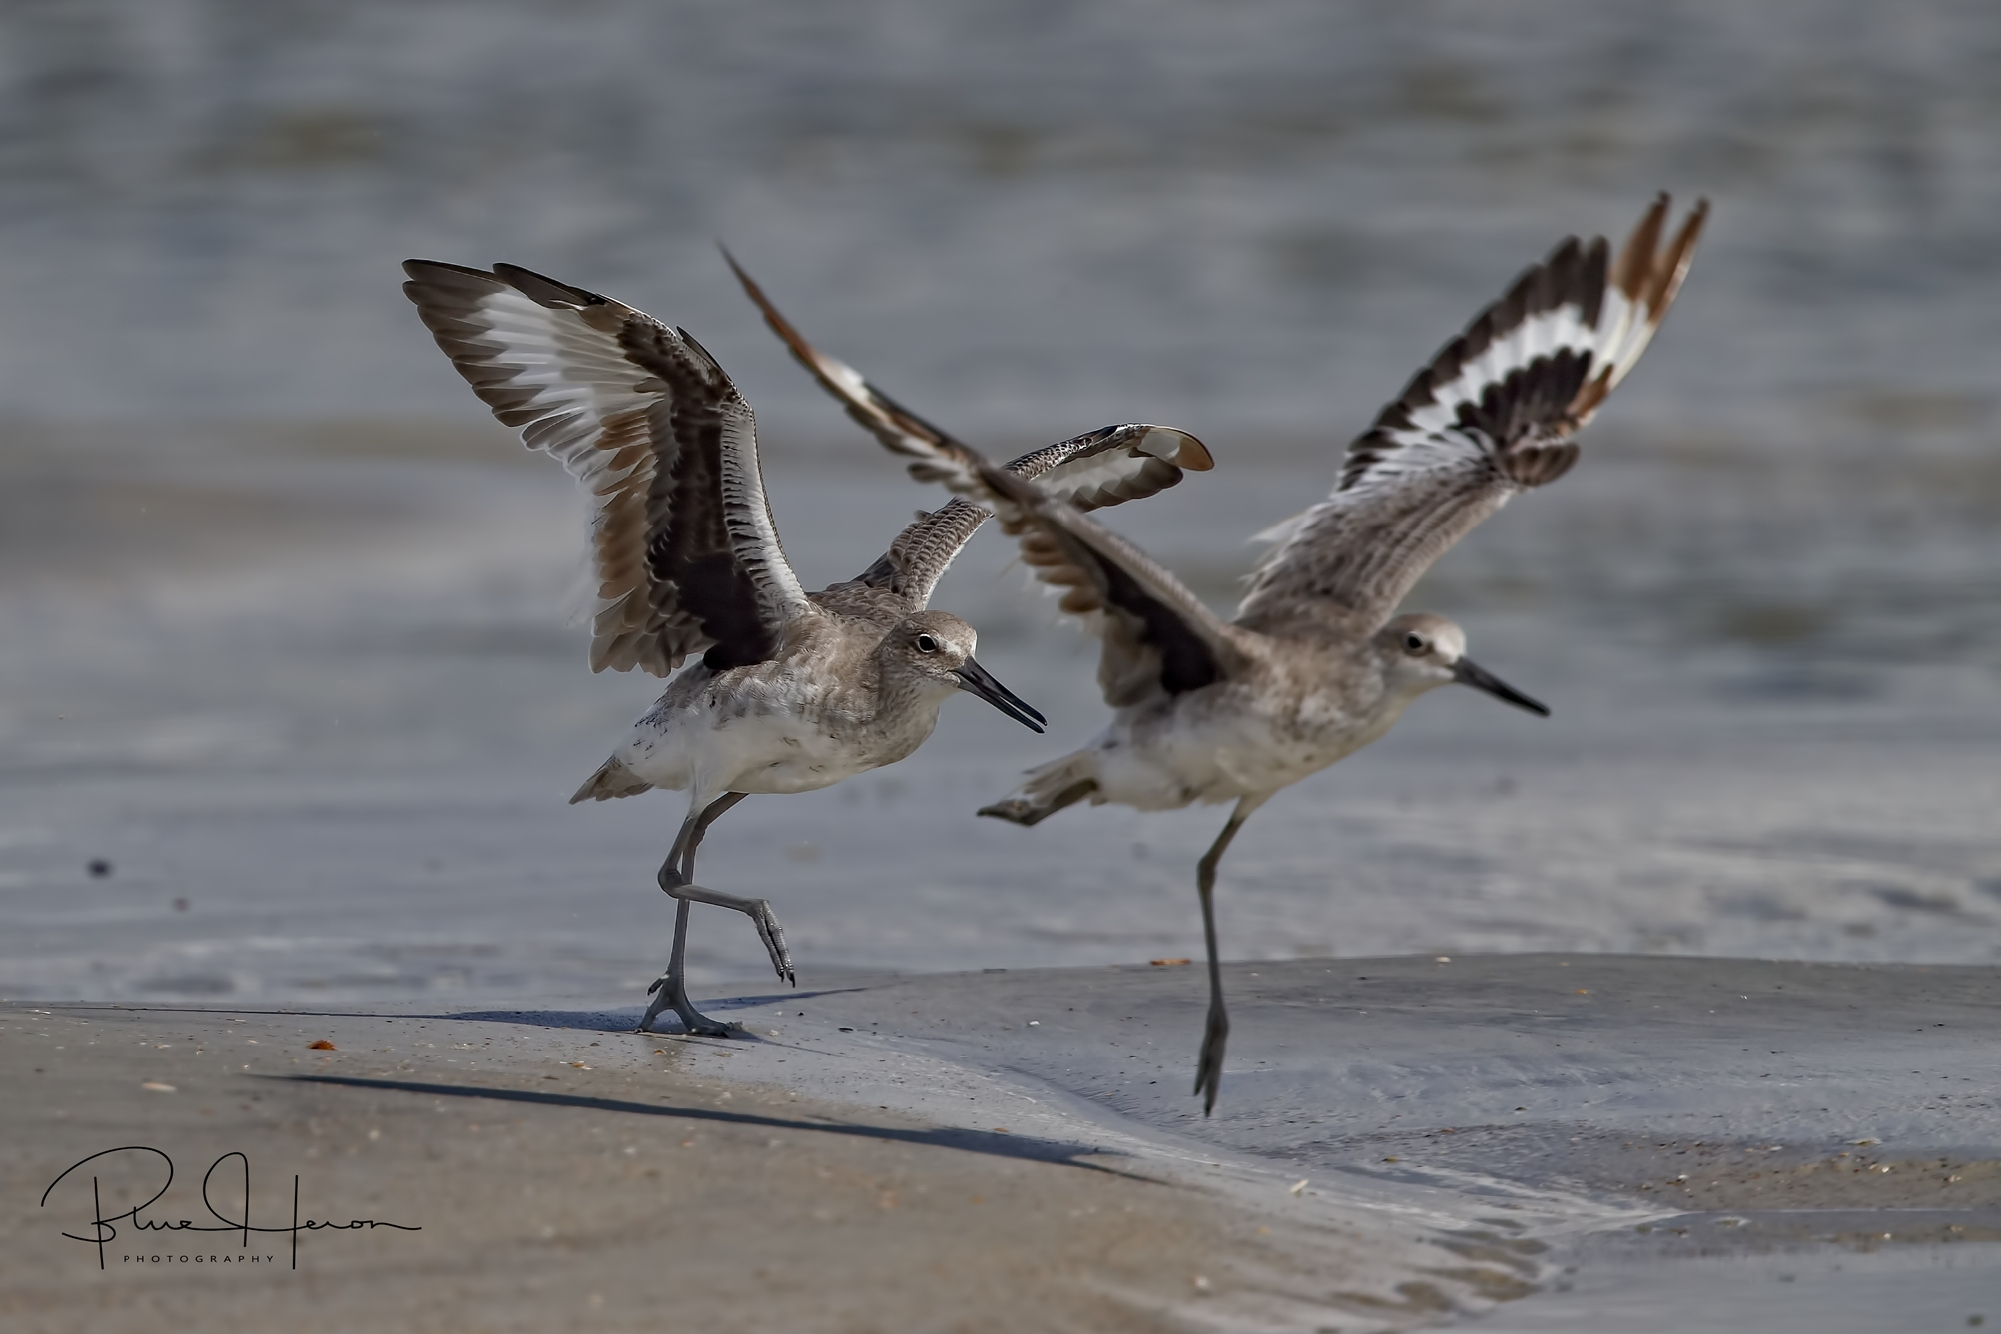 A pair of Willets came waltzing towards me with their distinctive wing stripes showing.